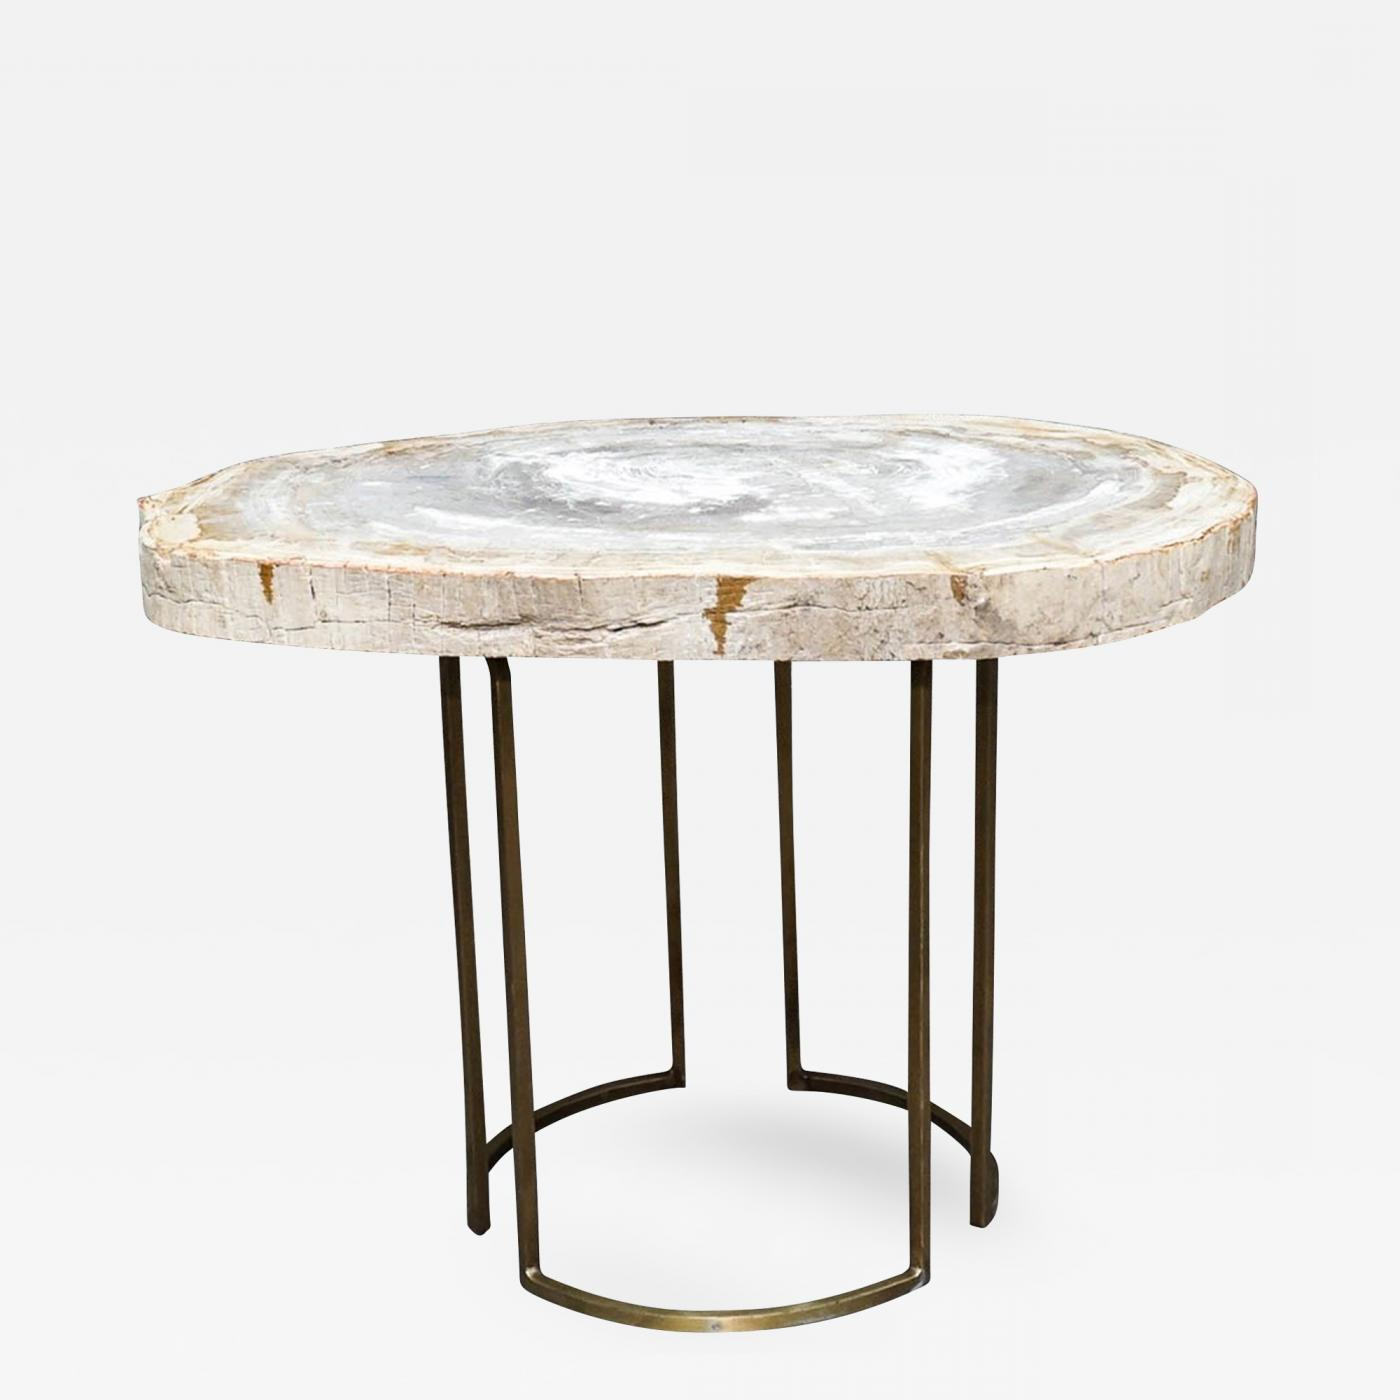 2019 Slab Large Marble Coffee Tables With Brass Base Pertaining To Custom Petrified Wood Slab Accent Table With Brass Base (Gallery 11 of 20)